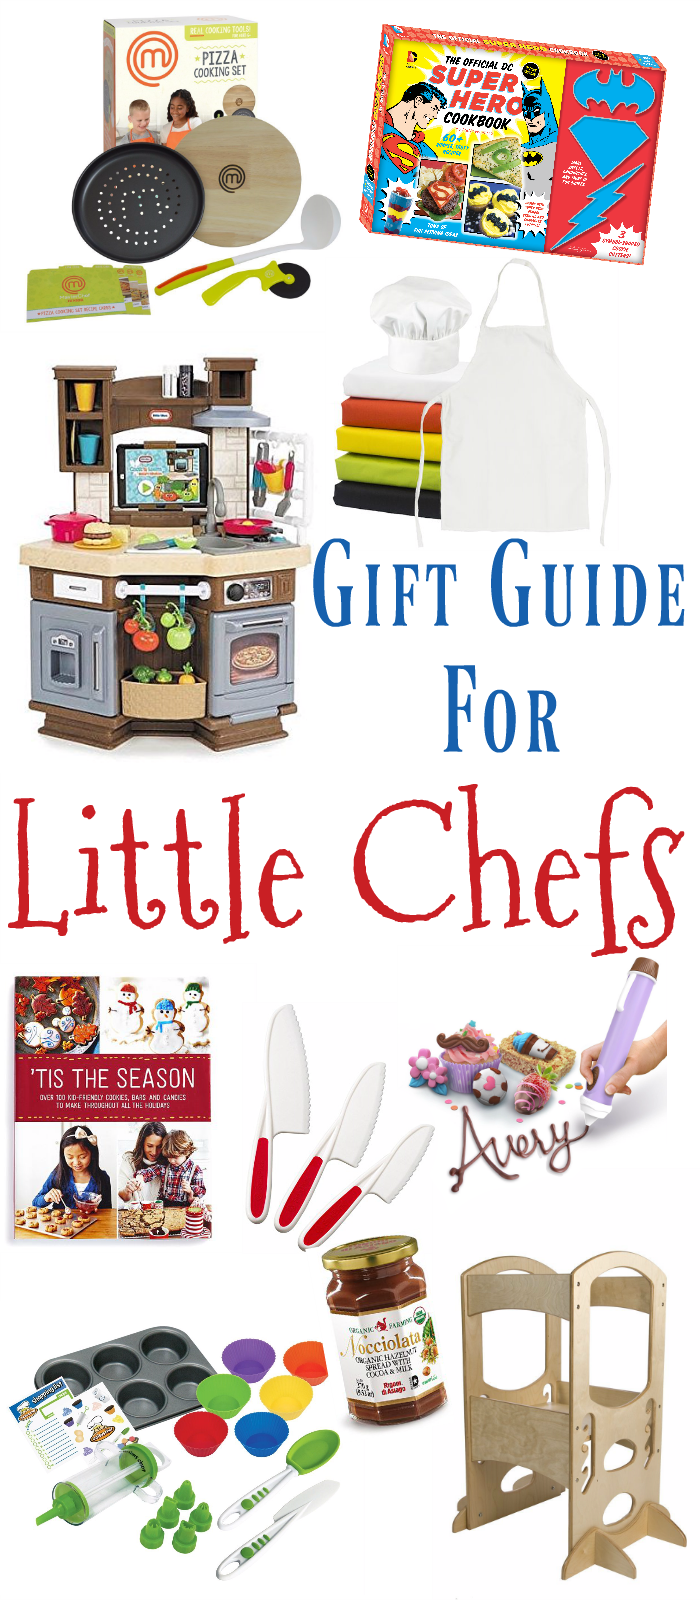 I found some great gift ideas from cookbooks to a chocolate pen! Even if the kiddo on your list has yet to discover the wonders of cooking, these gifts would be a great way to introduce them to cooking.